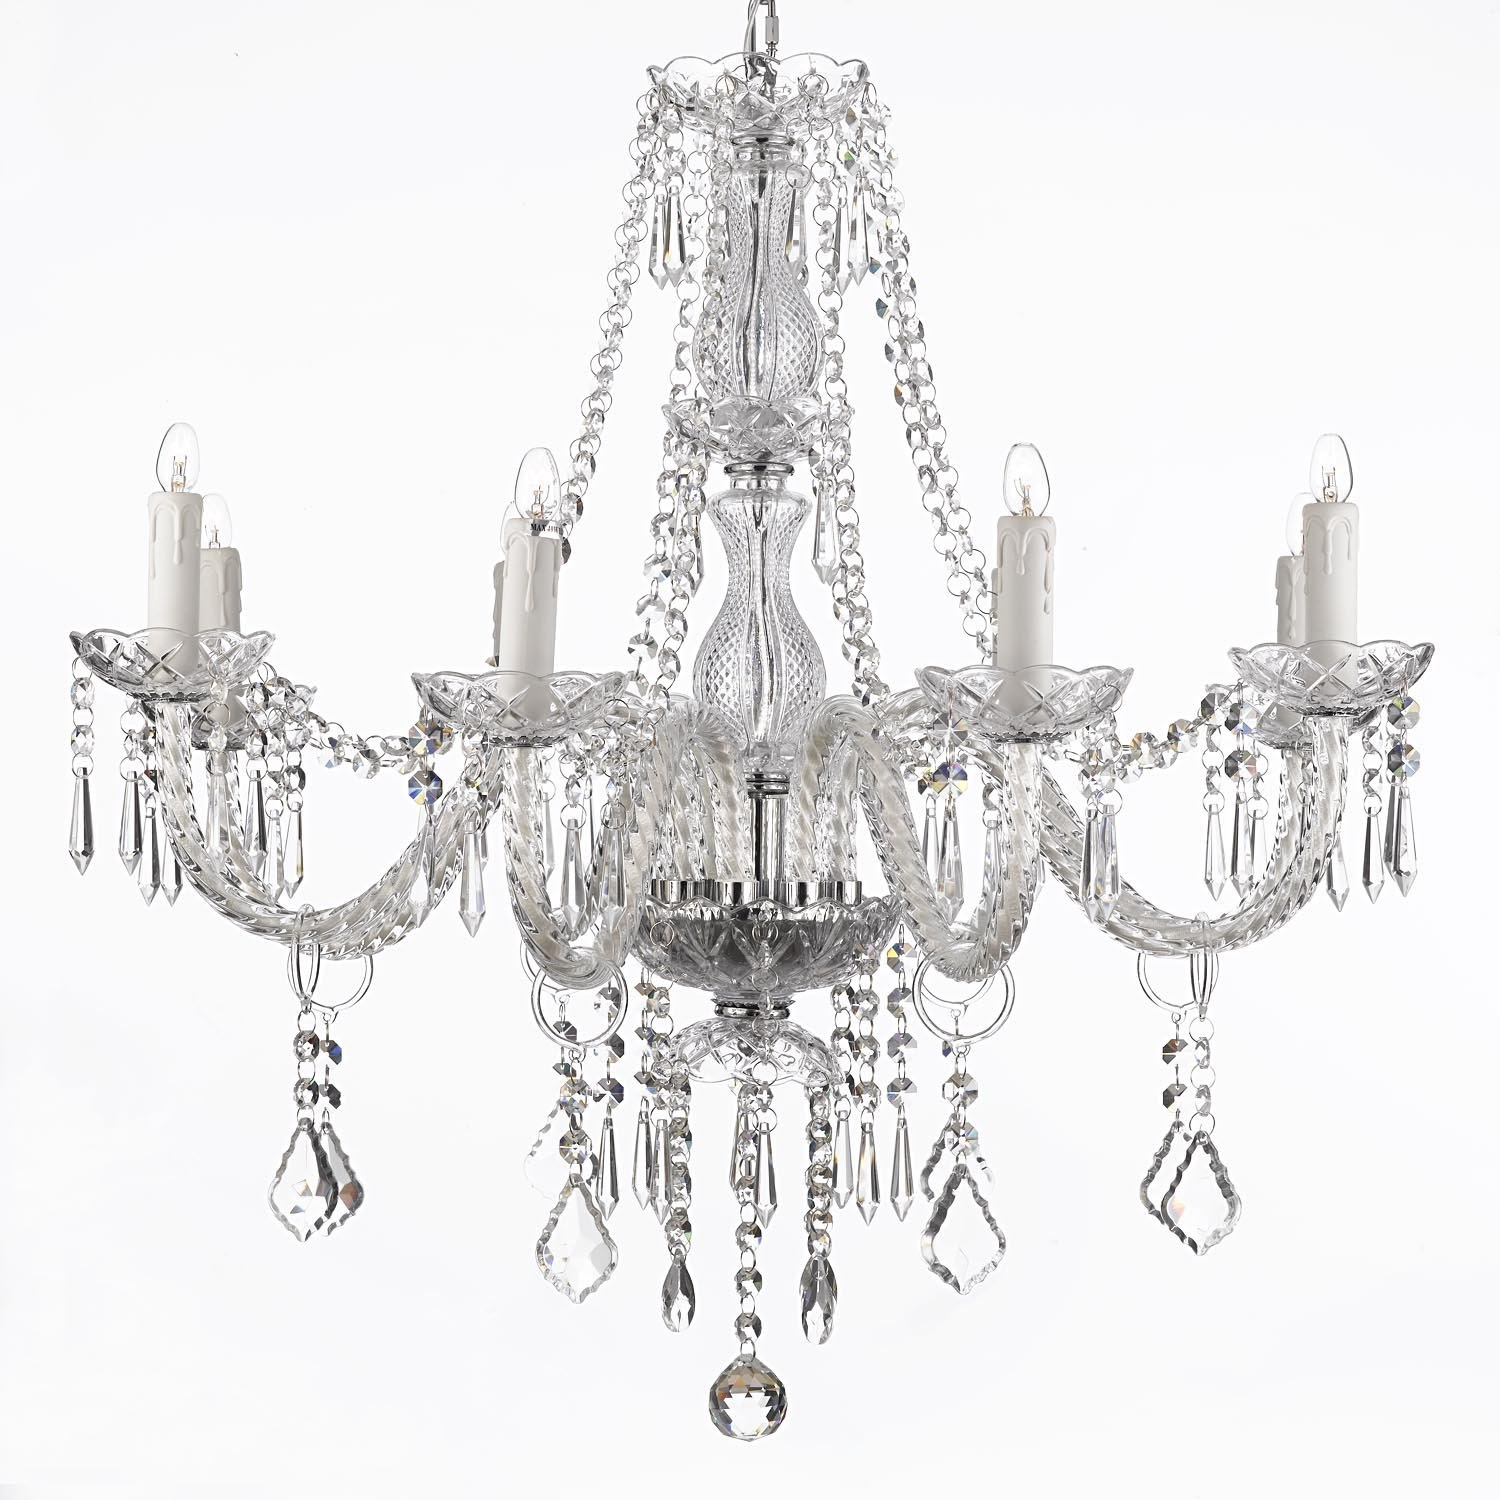 Featured Image of Hanging Candelabra Chandeliers